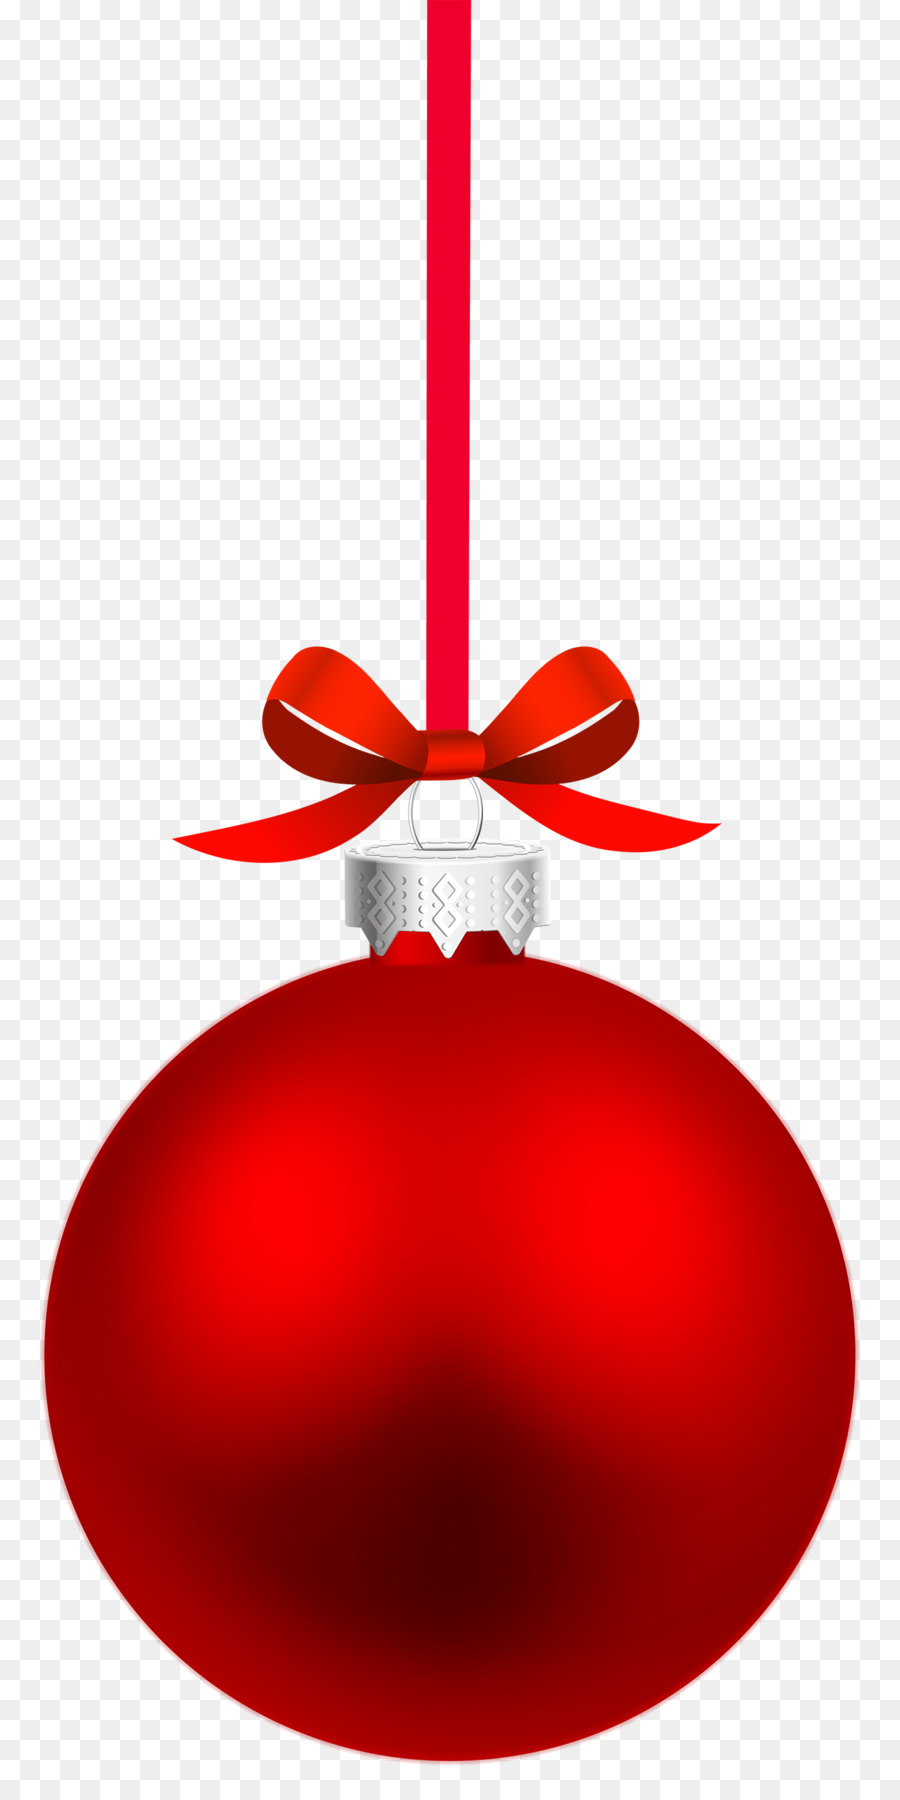 Red Christmas Tree Png Download 1258 2500 Free Transparent Christmas Ornament Png Download Cleanpng Kisspng